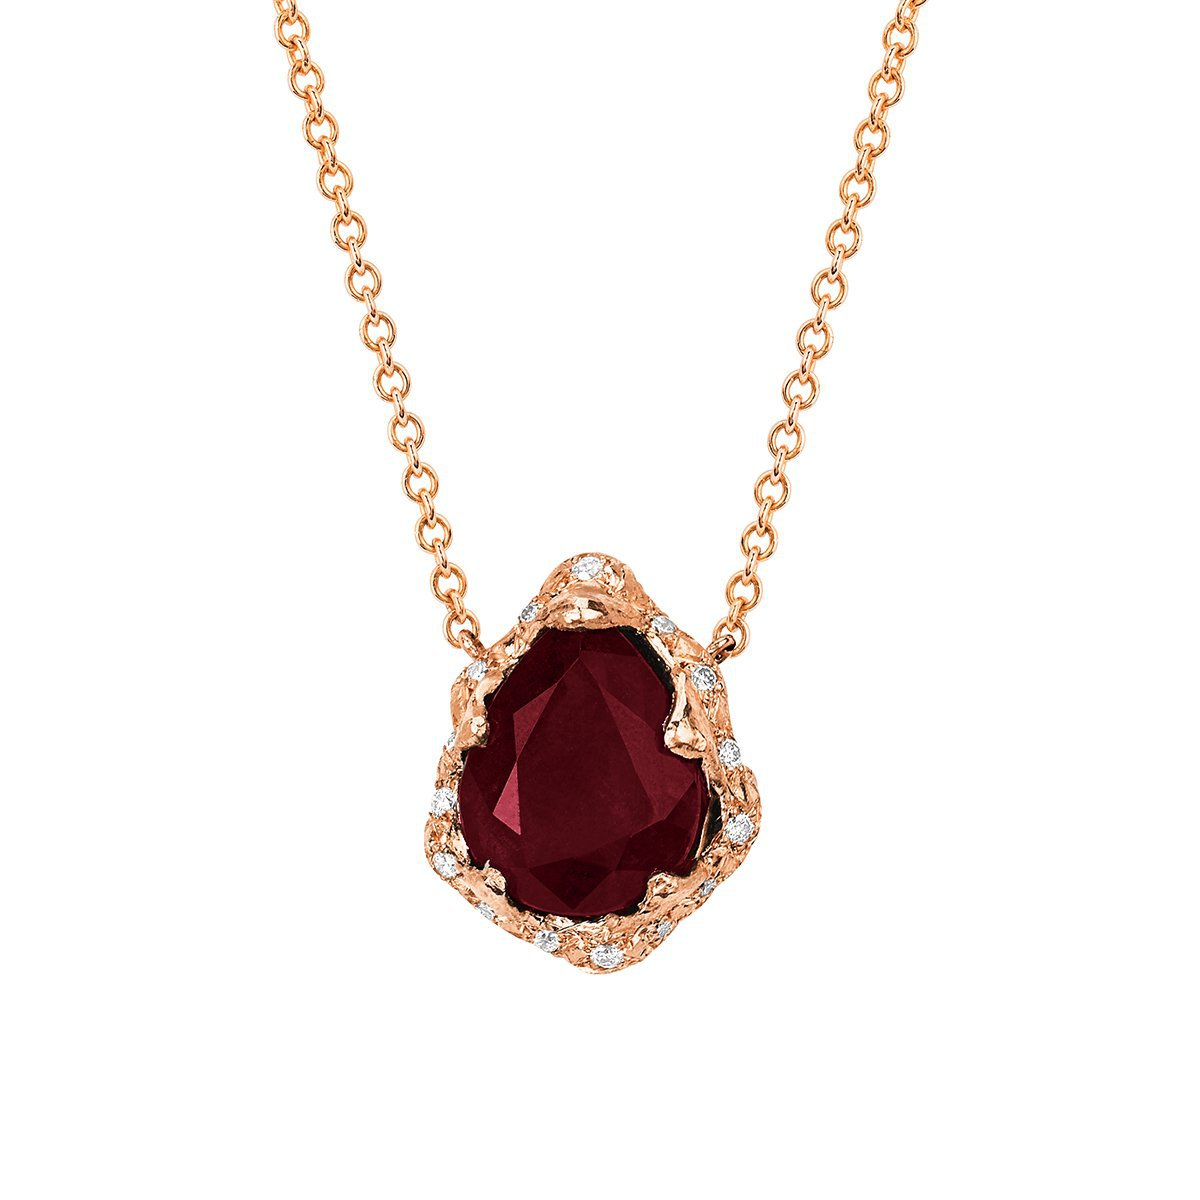 Baby Queen Premium Water Drop Ruby Necklace with Sprinkled Diamonds